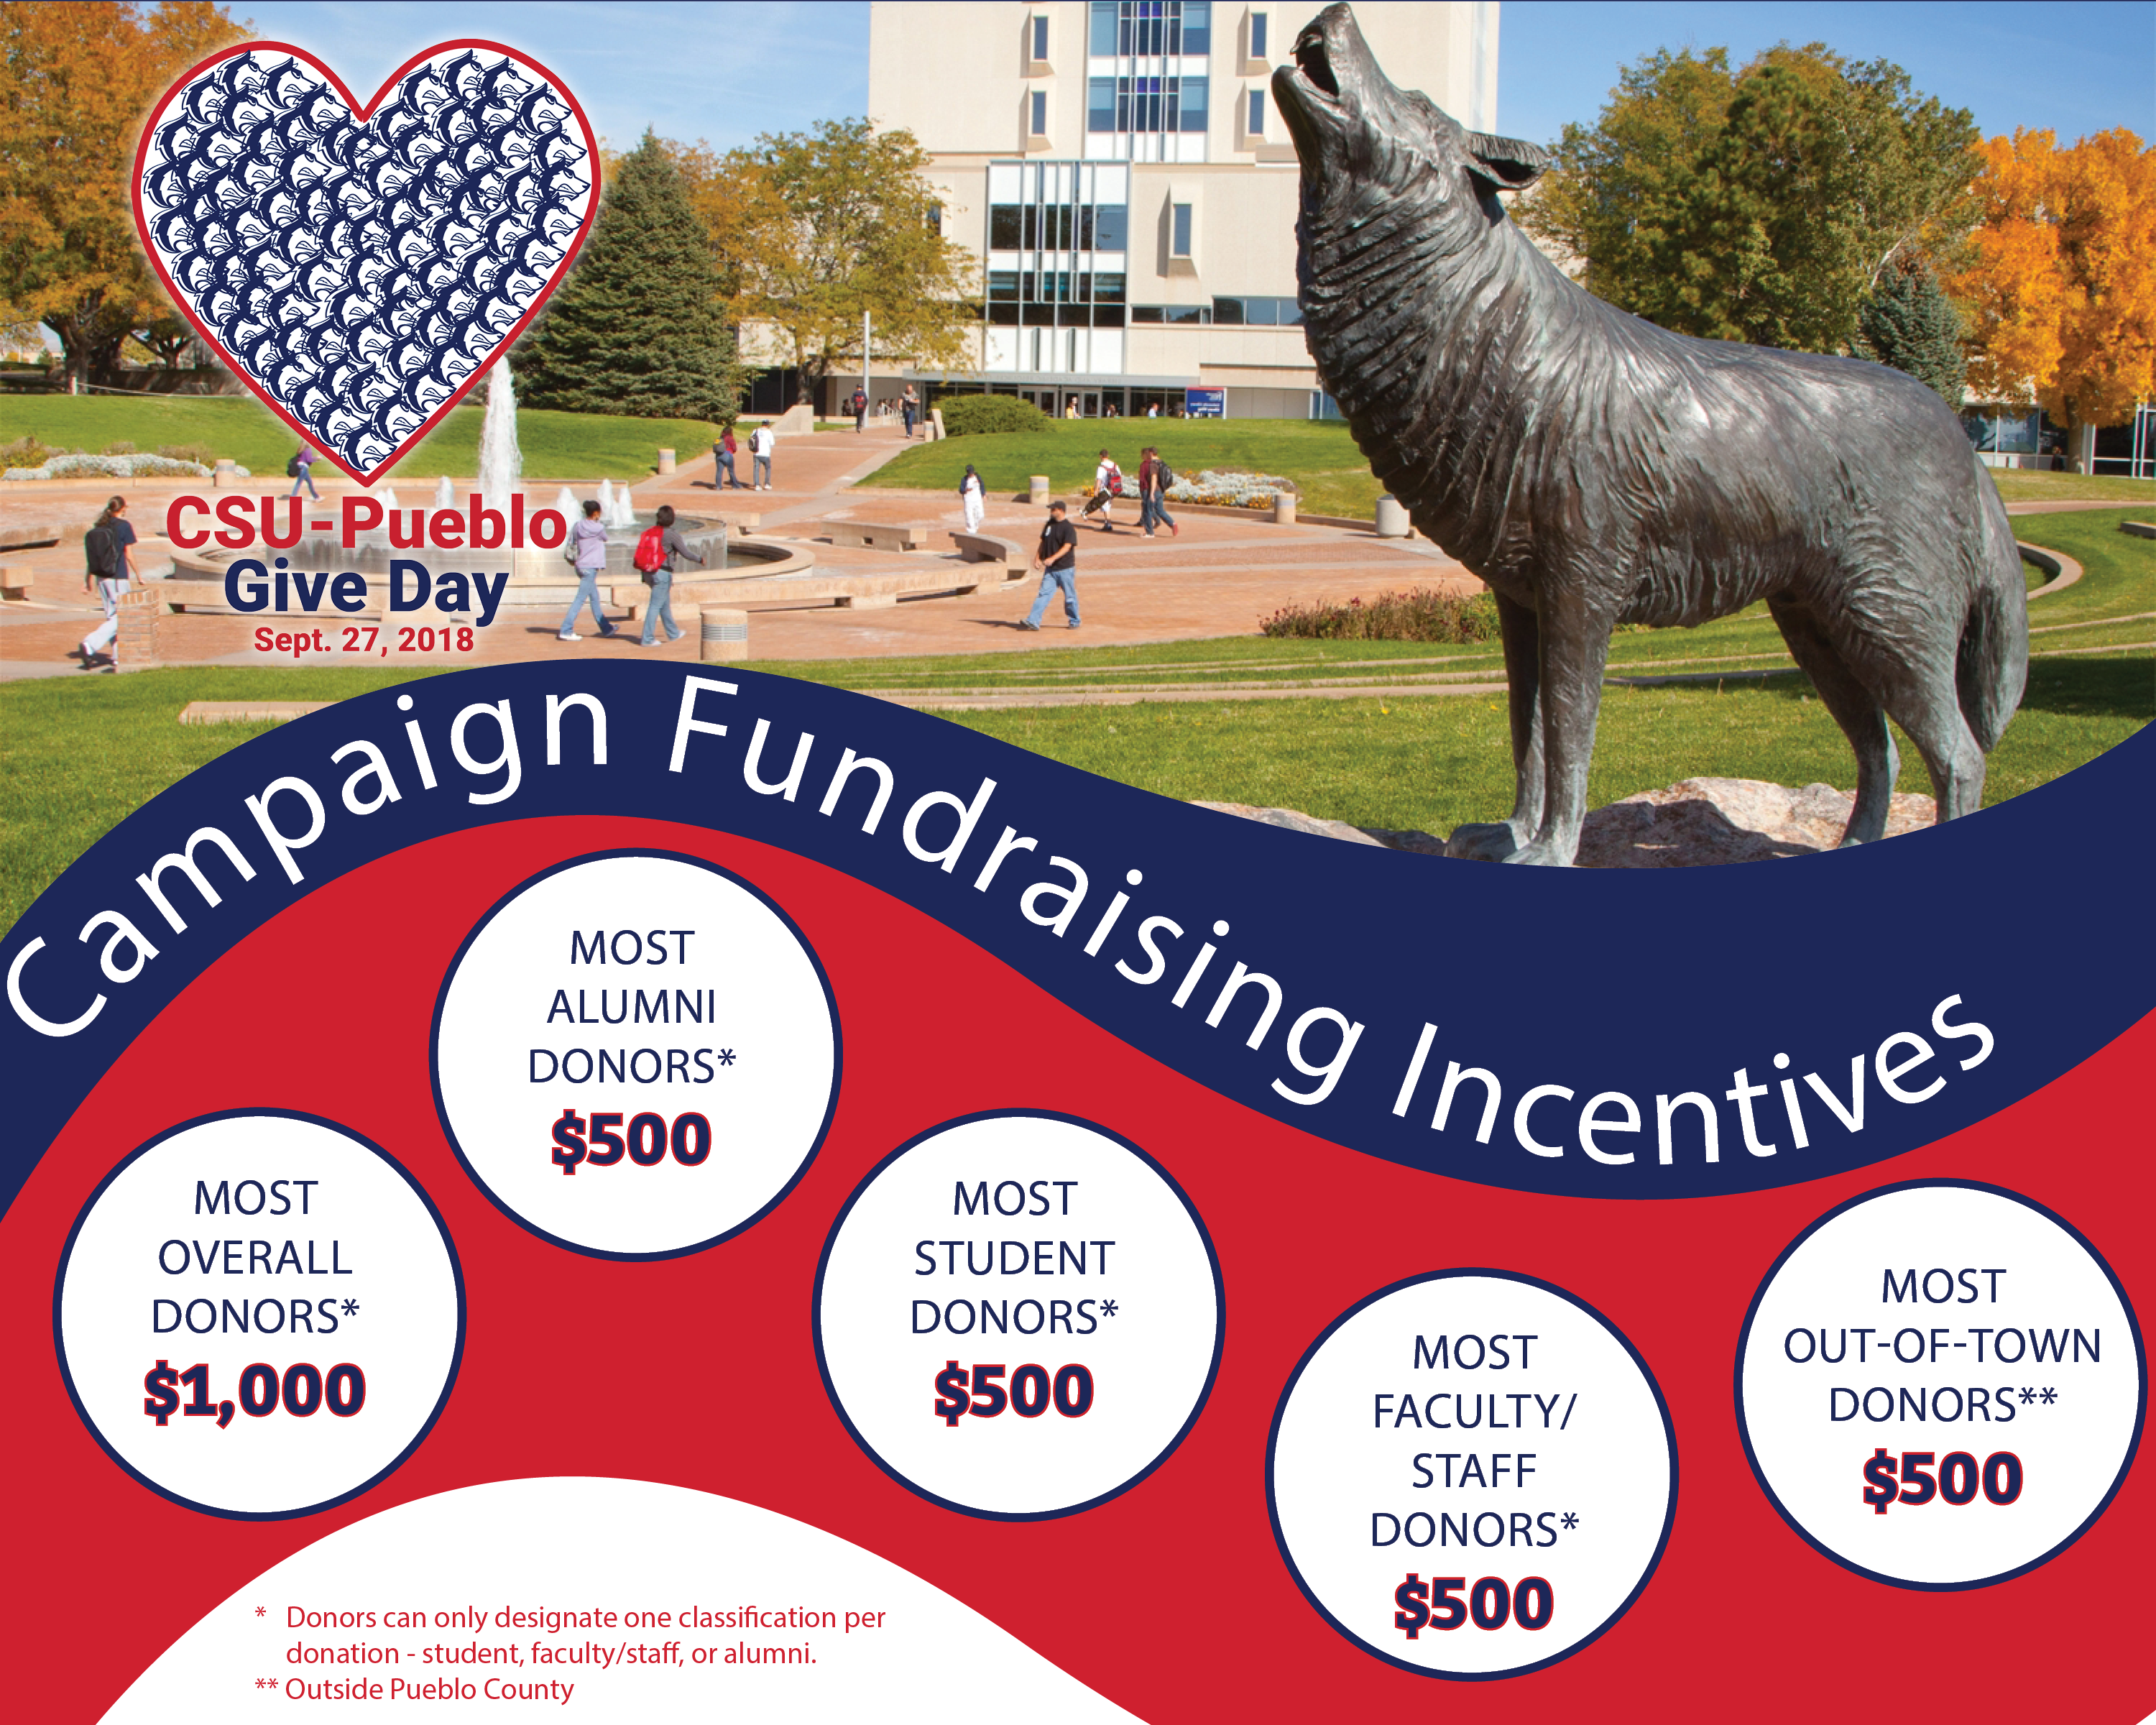 give day 2018 campaign incentives